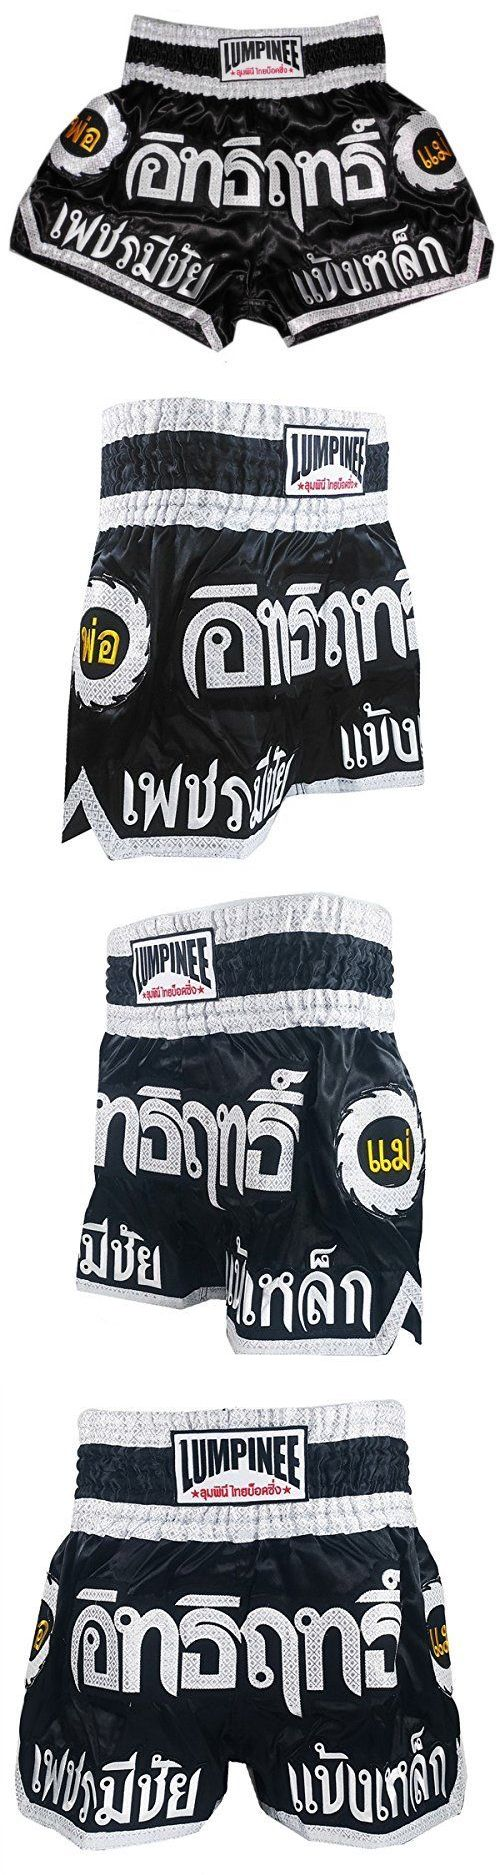 Other Combat Sport Clothing 73988: Lumpinee Muay Thai Kick Boxing Shorts : Lum-002 Size Xl, New -> BUY IT NOW ONLY: $124.9 on eBay!